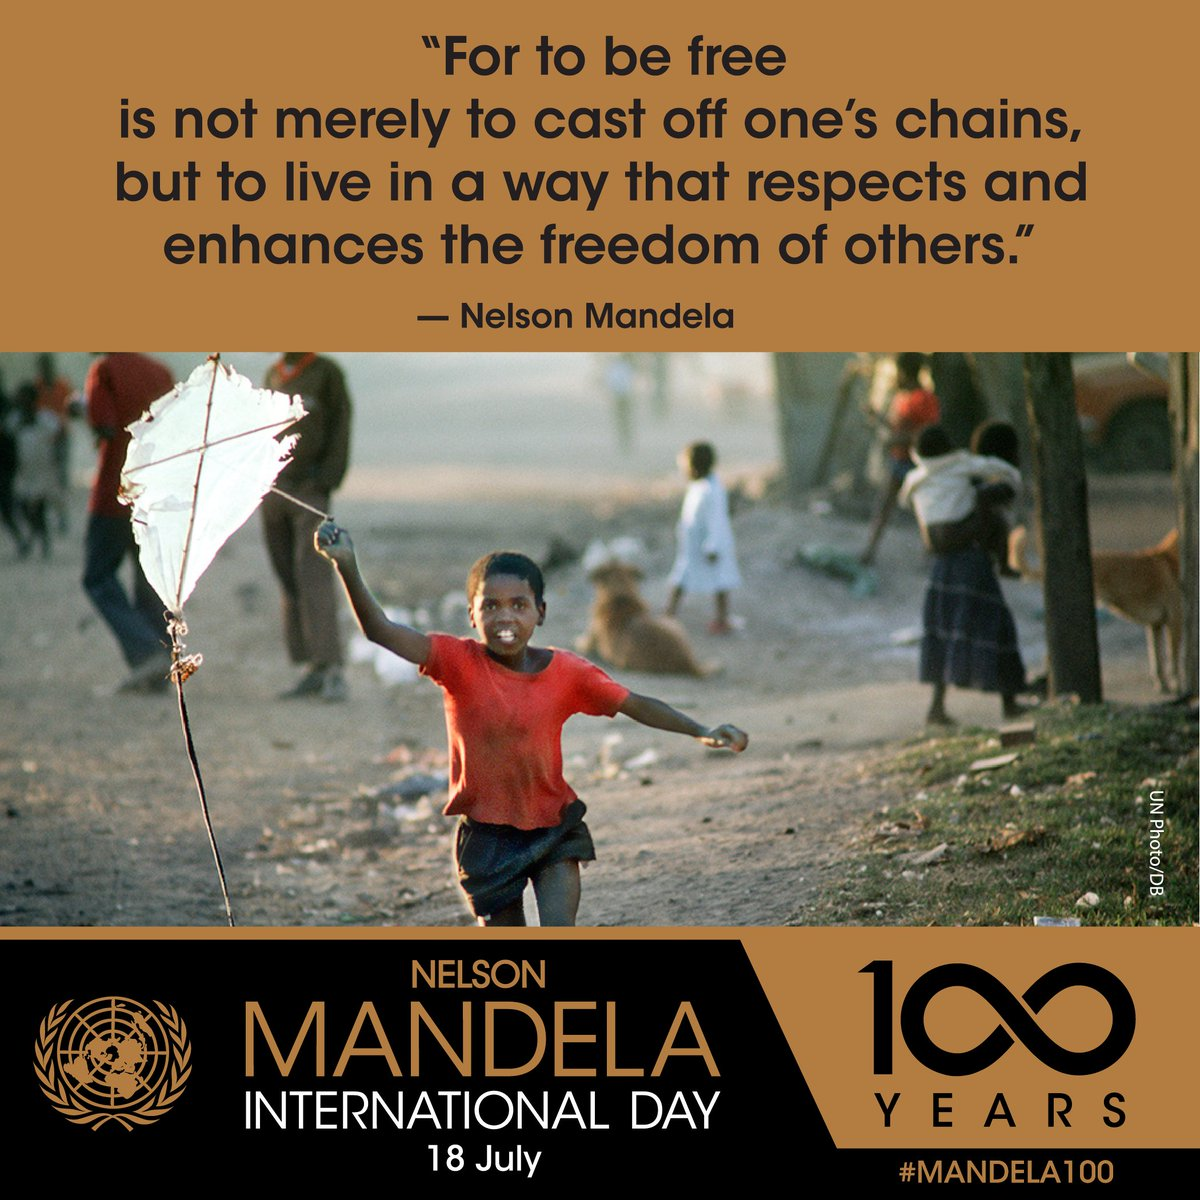 Ahead of #MandelaDay, new exhibit on display at UNHQ in NYC celebrates the centenary of the human rights icons birth by showcasing his contributions to the work of the UN bit.ly/2G6GI5V